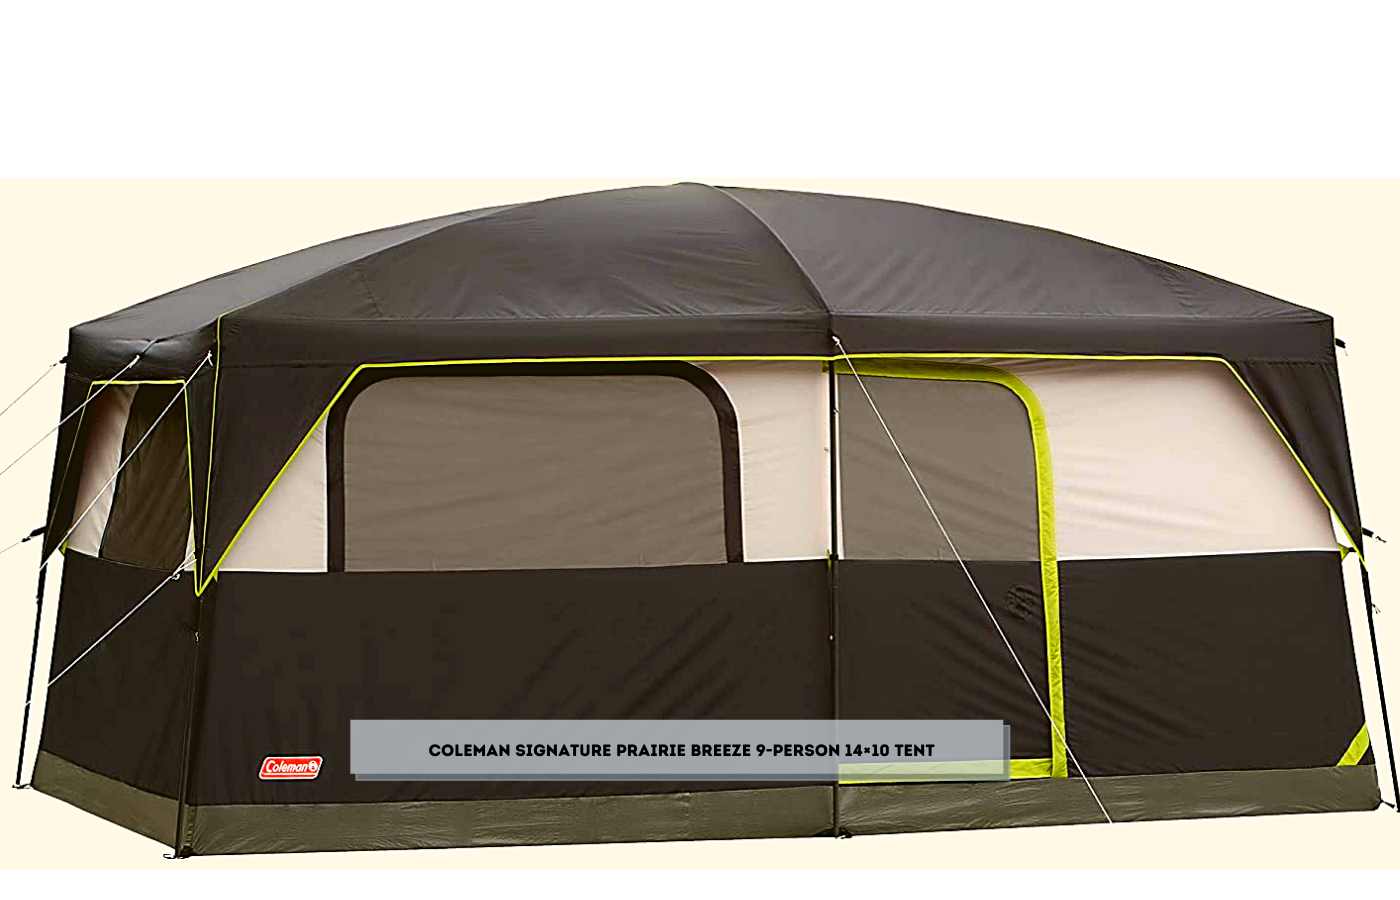 Coleman Signature Prairie Breeze 9-Person 14×10 Tent